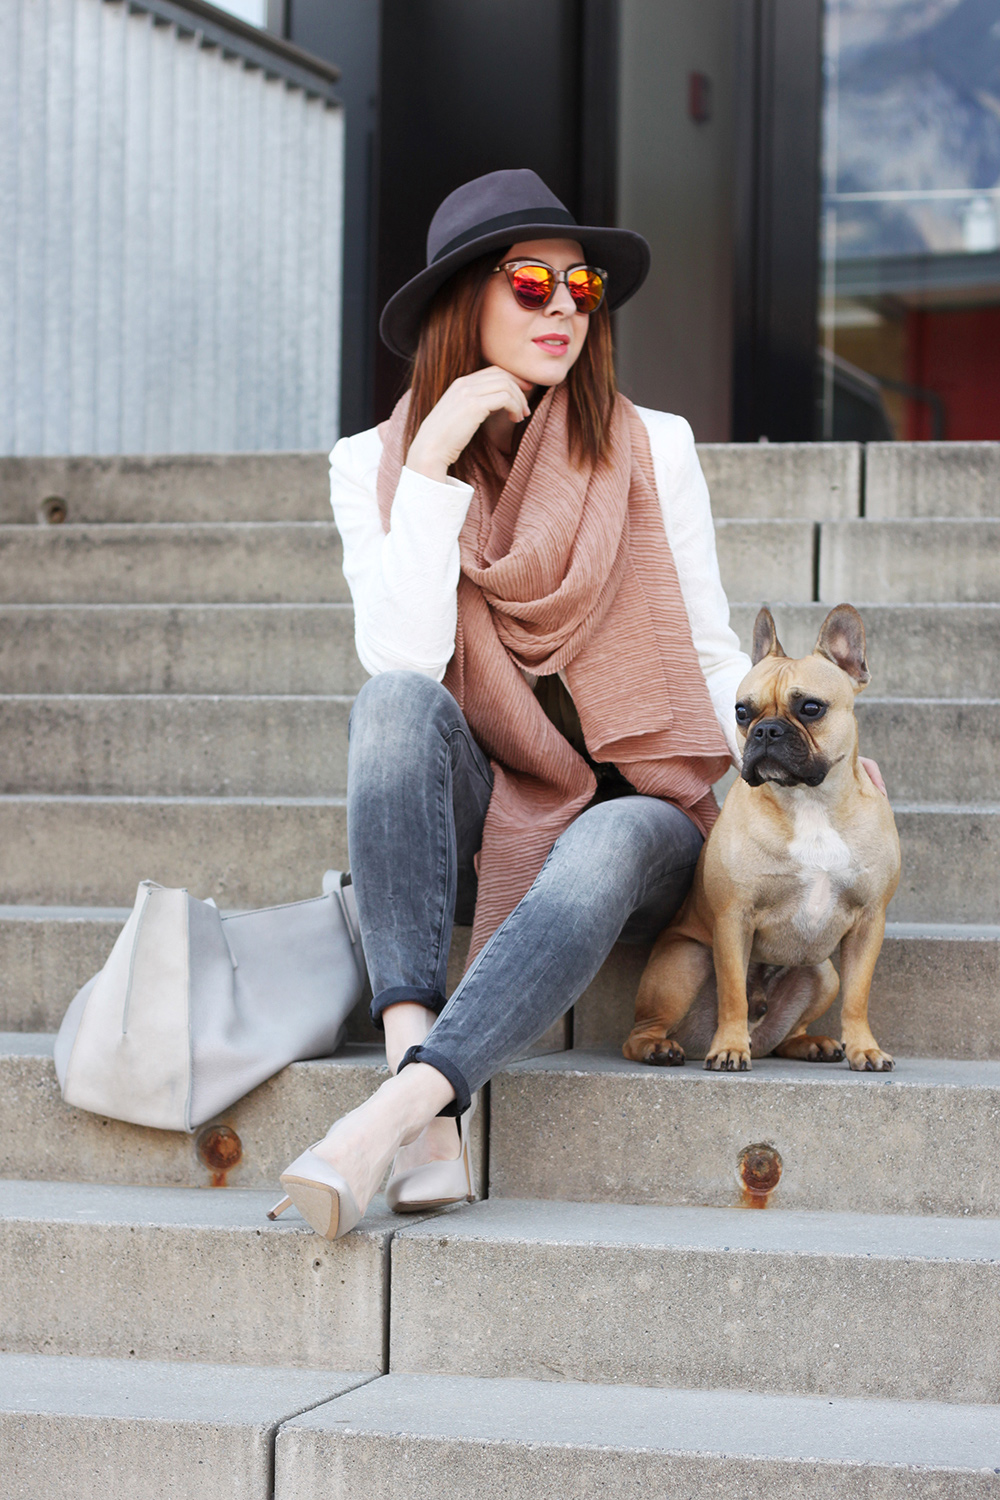 who is mocca, blogger, tirol, blog tirol, modeblog, fashionblogger, orsay, giveaway, outfit of the day, inspiration, pumps, mango, deal queen, frenchie, bulldog, fedora, vestiaire collective, khaki blouse, whoismocca.com